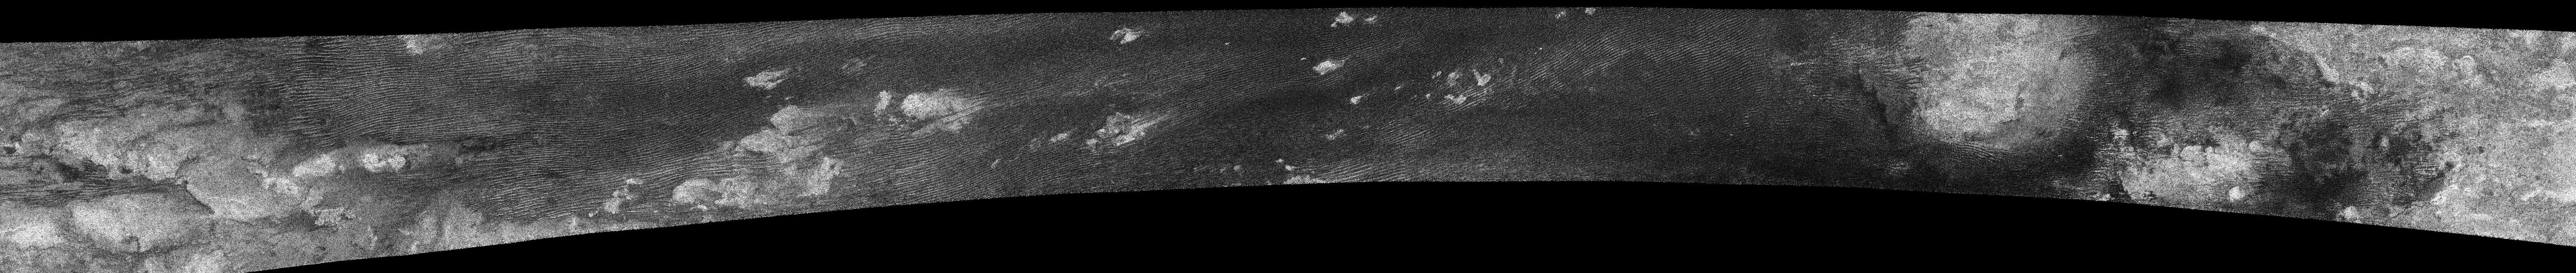 Titan's dunes, from Oct. 28, 2005 flyby